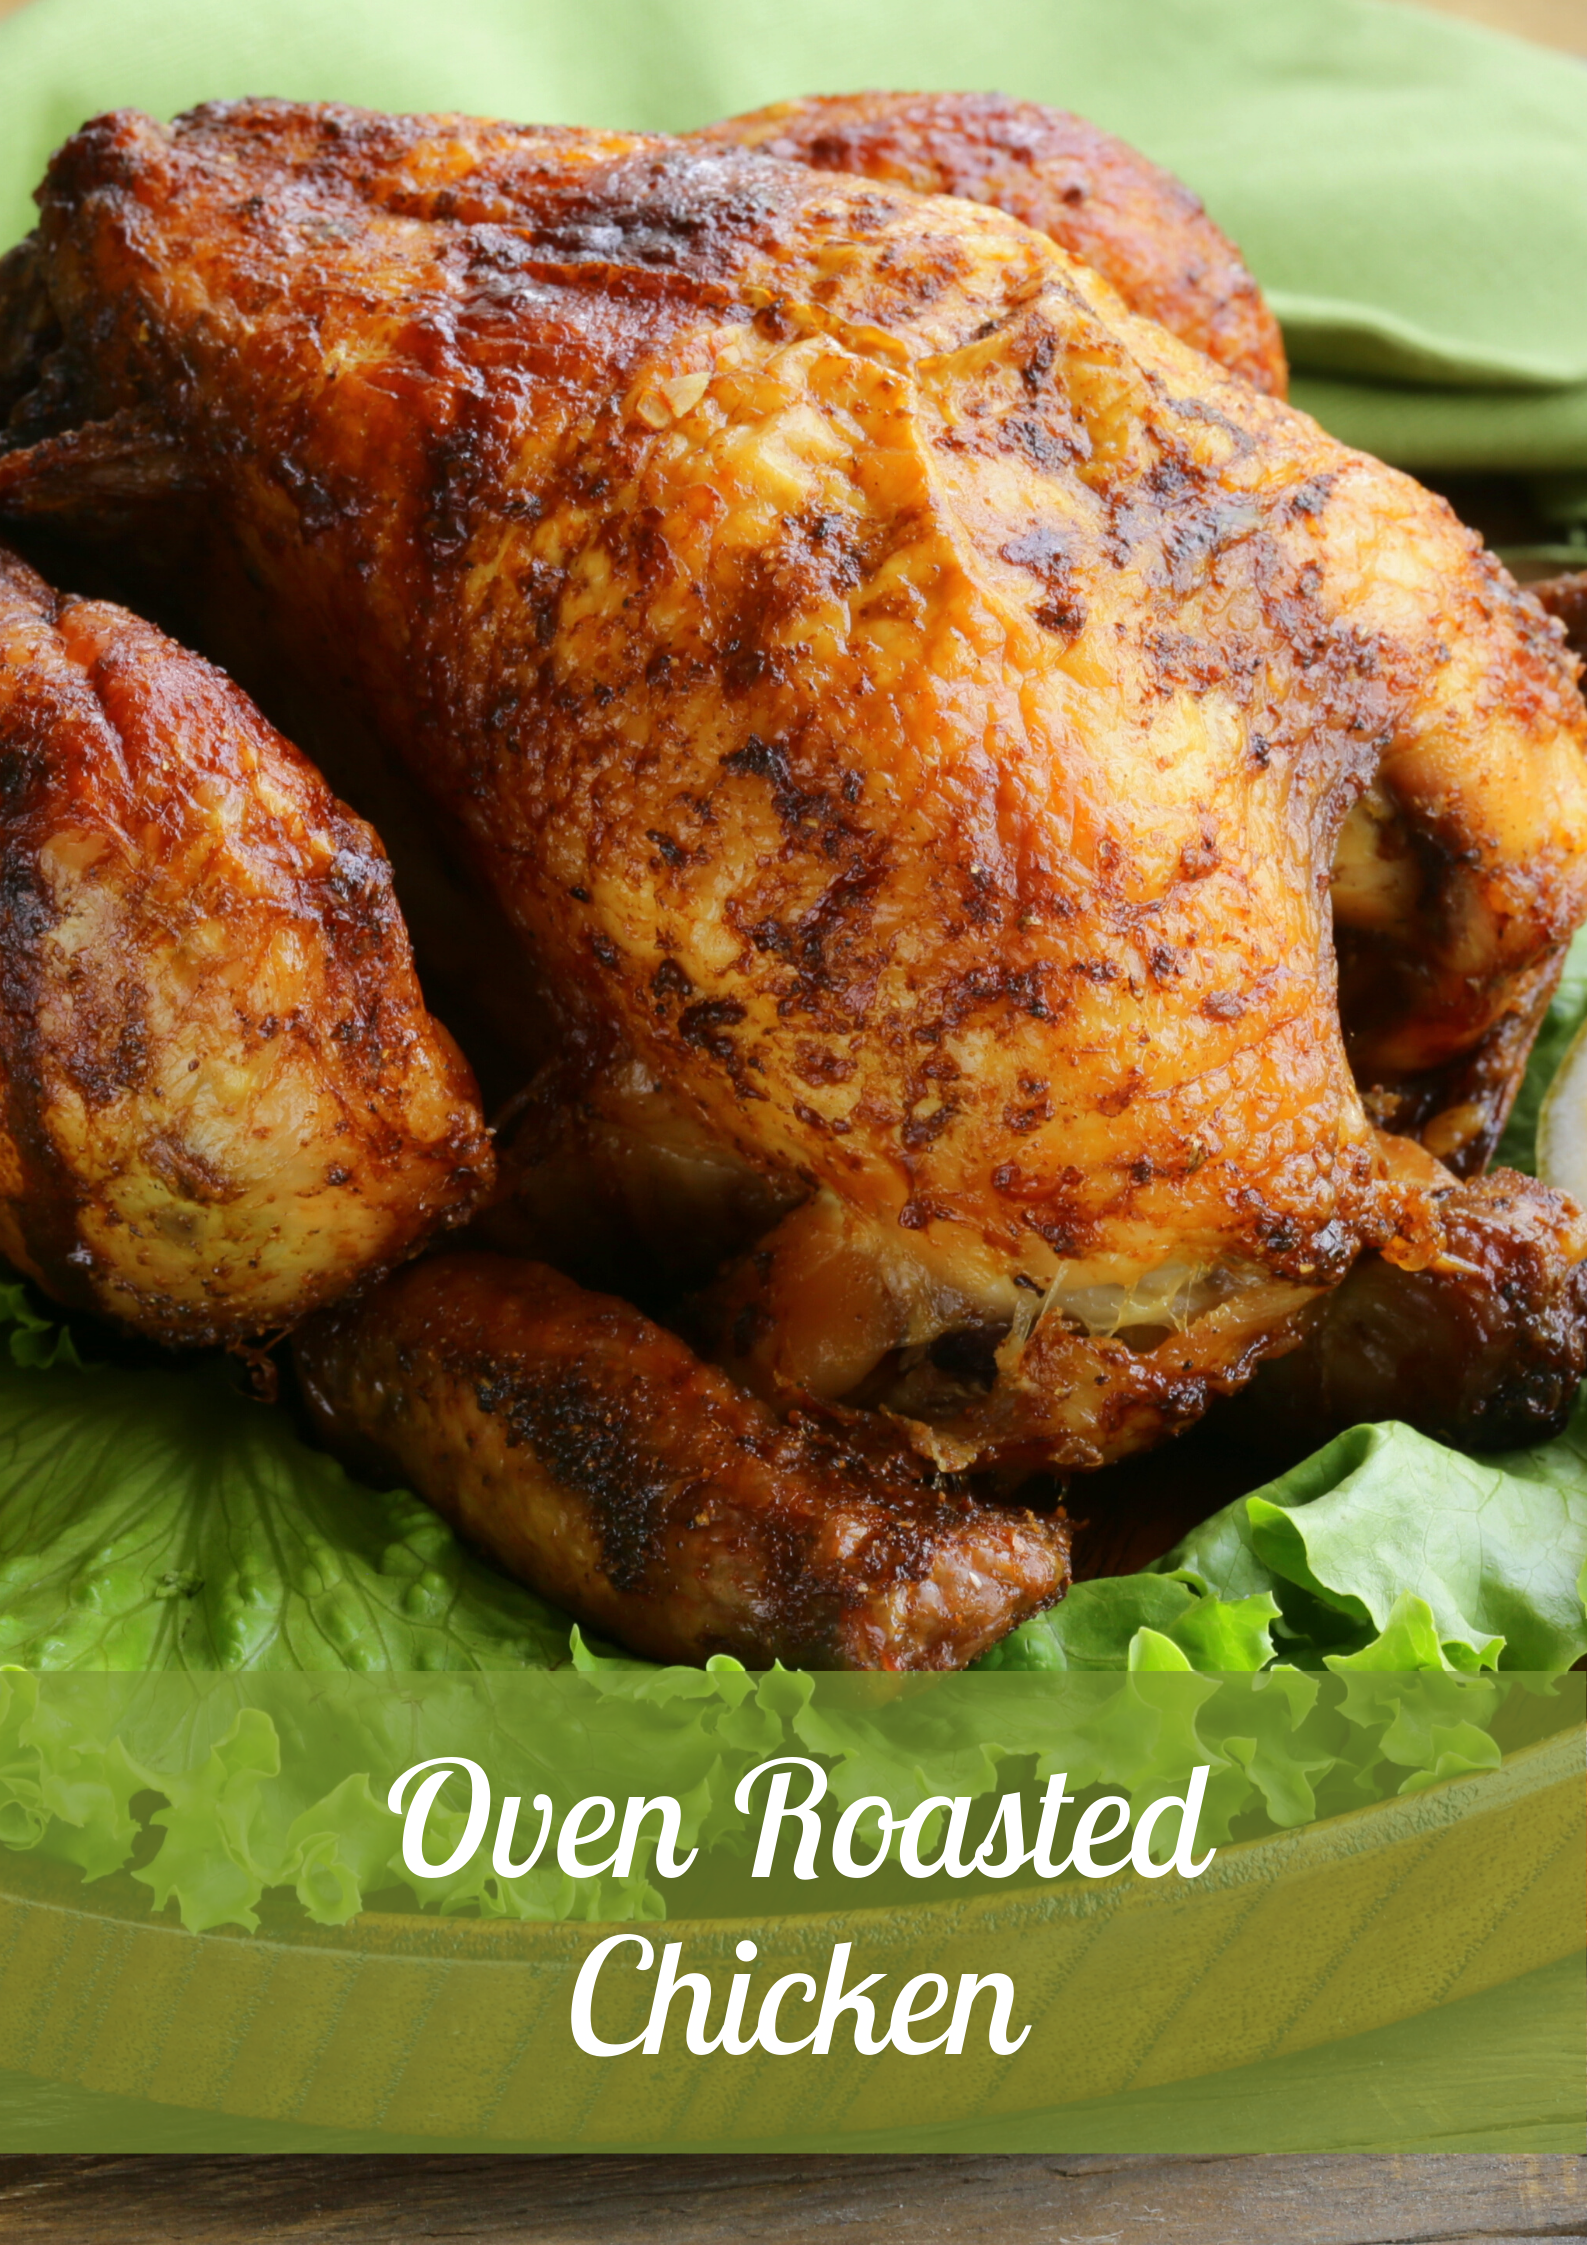 Oven Roasted Chicken Gallery Image